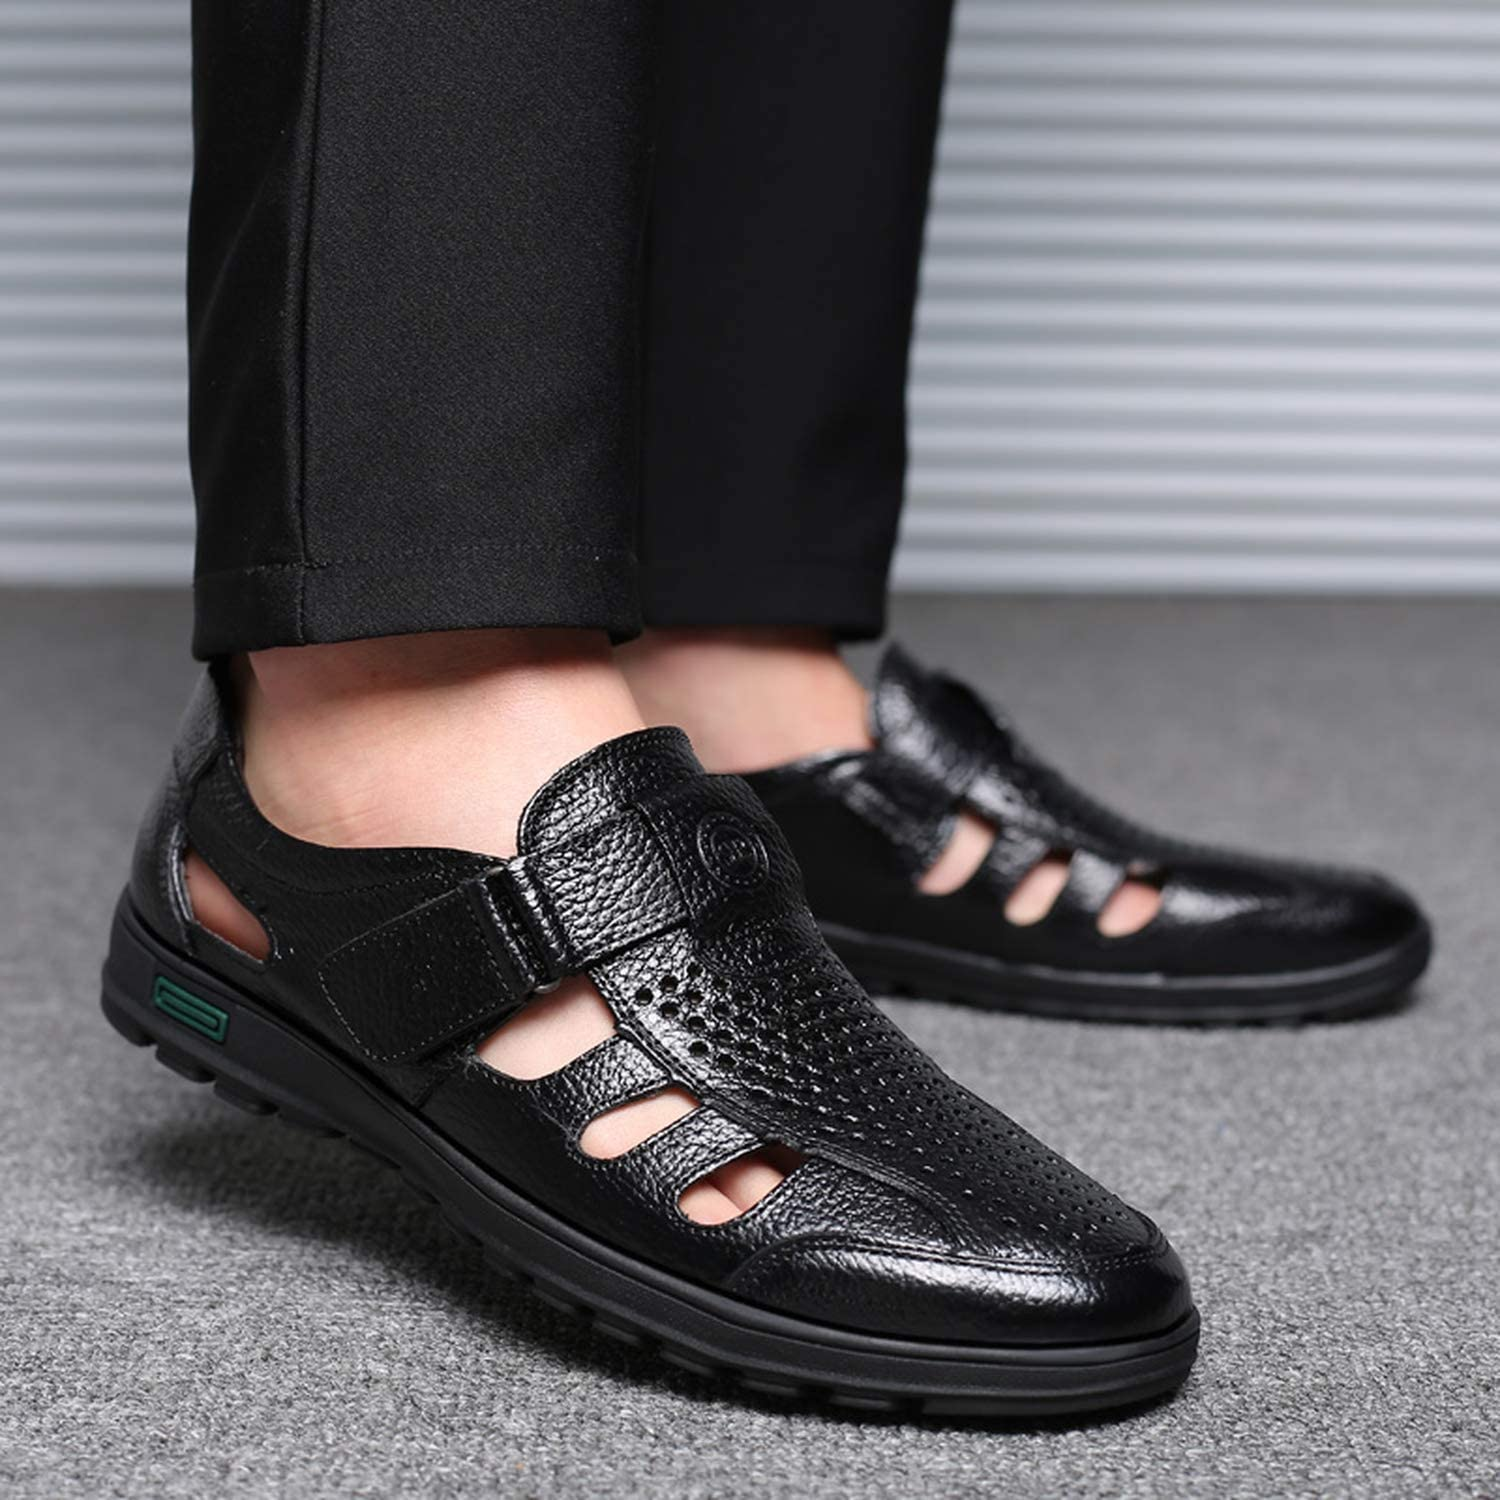 Genuine Leather Men Summer Sandals Breathable Casual Shoes Man Closed Toe Beach Shoes Rubber Sole Mens